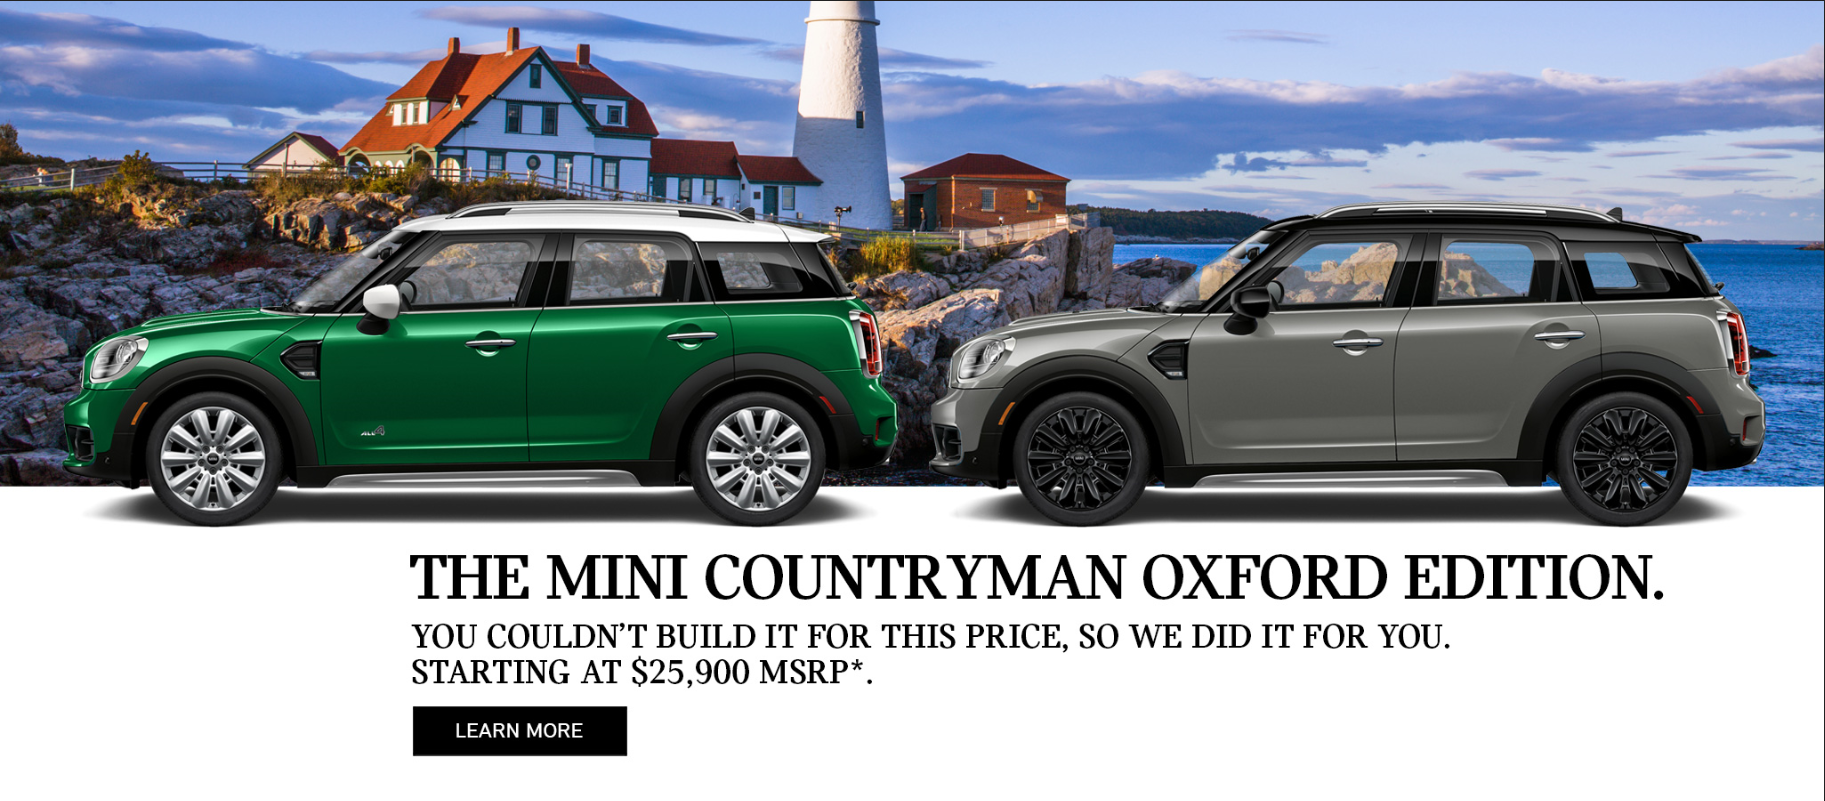 THE MINI COUNTRYMAN OXFORD EDITION. You couldnt build it for this price, so we did. Starting at $25,900 MSRP.